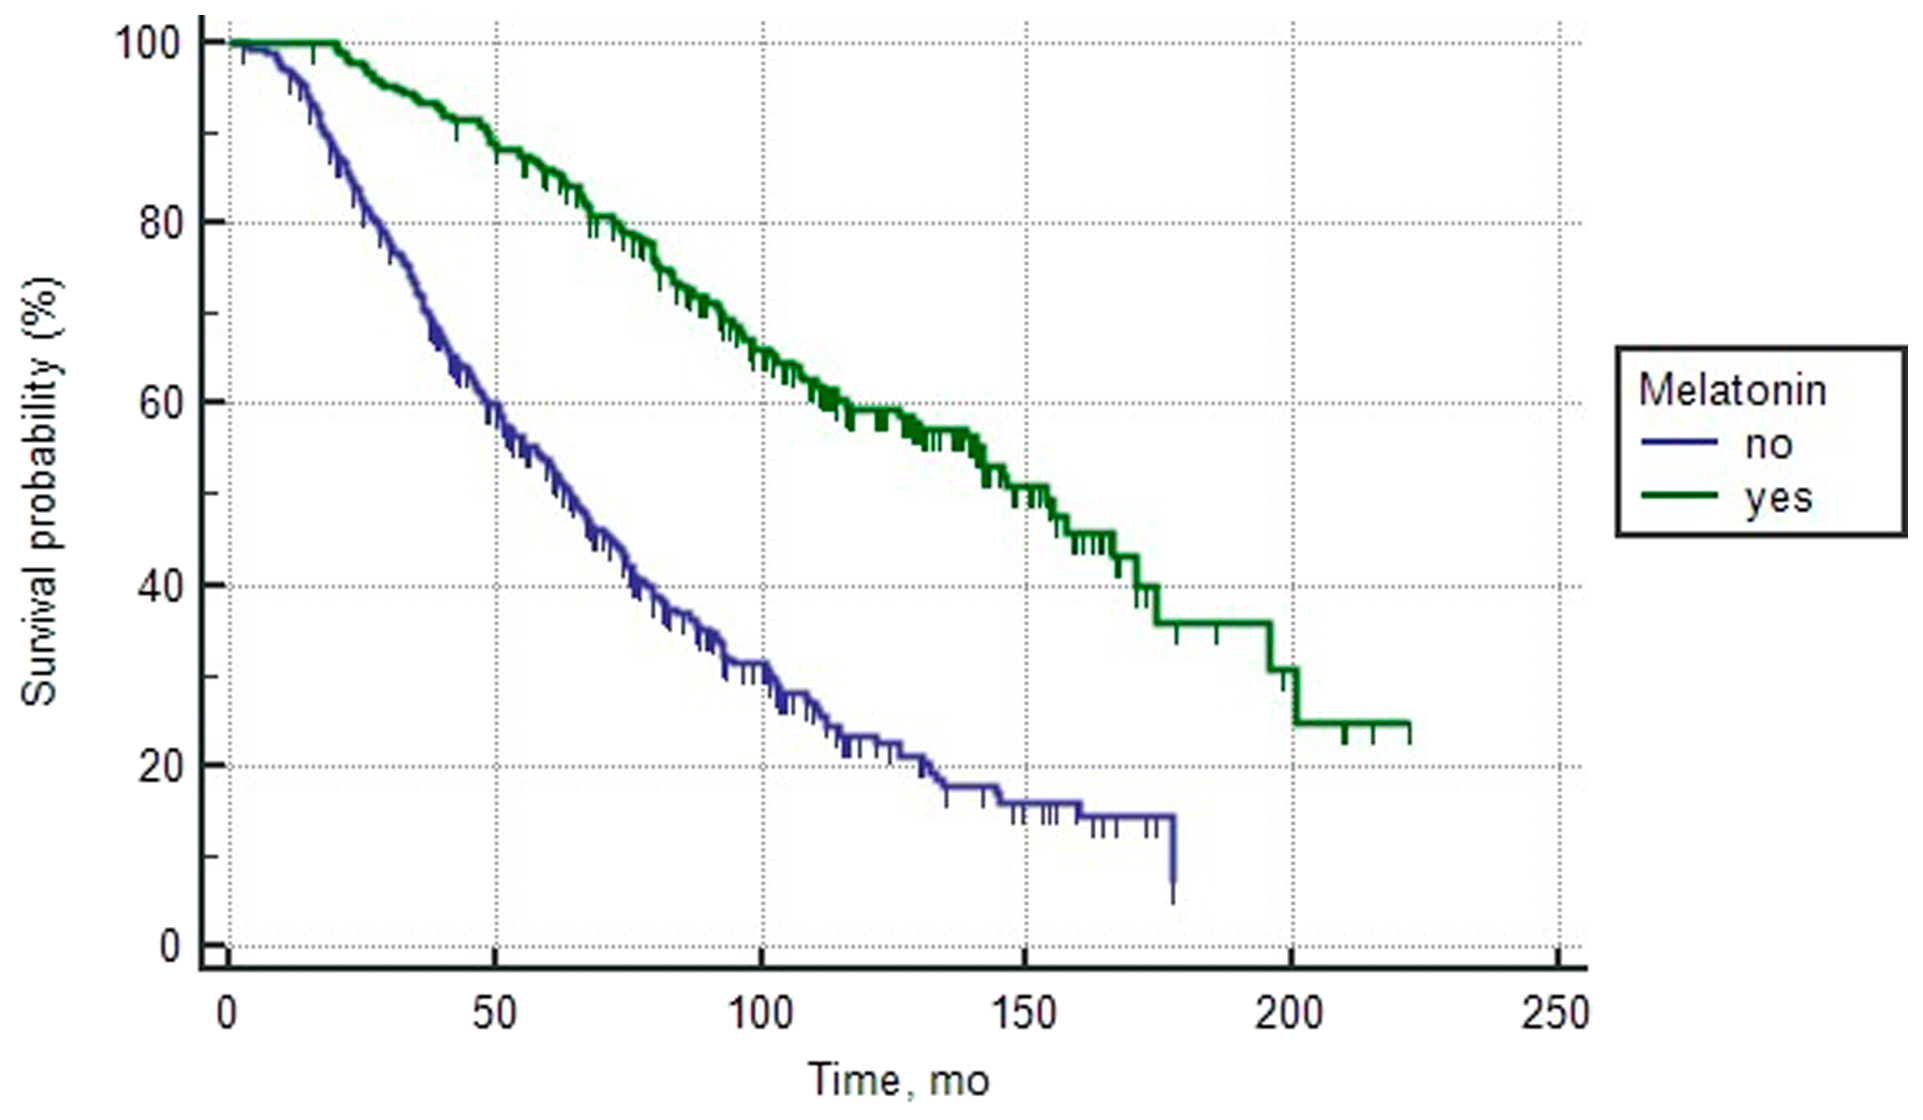 Overall survival curves of patients with poor prognosis PCa depending on the intake of melatonin (log rank test < 0.0001).